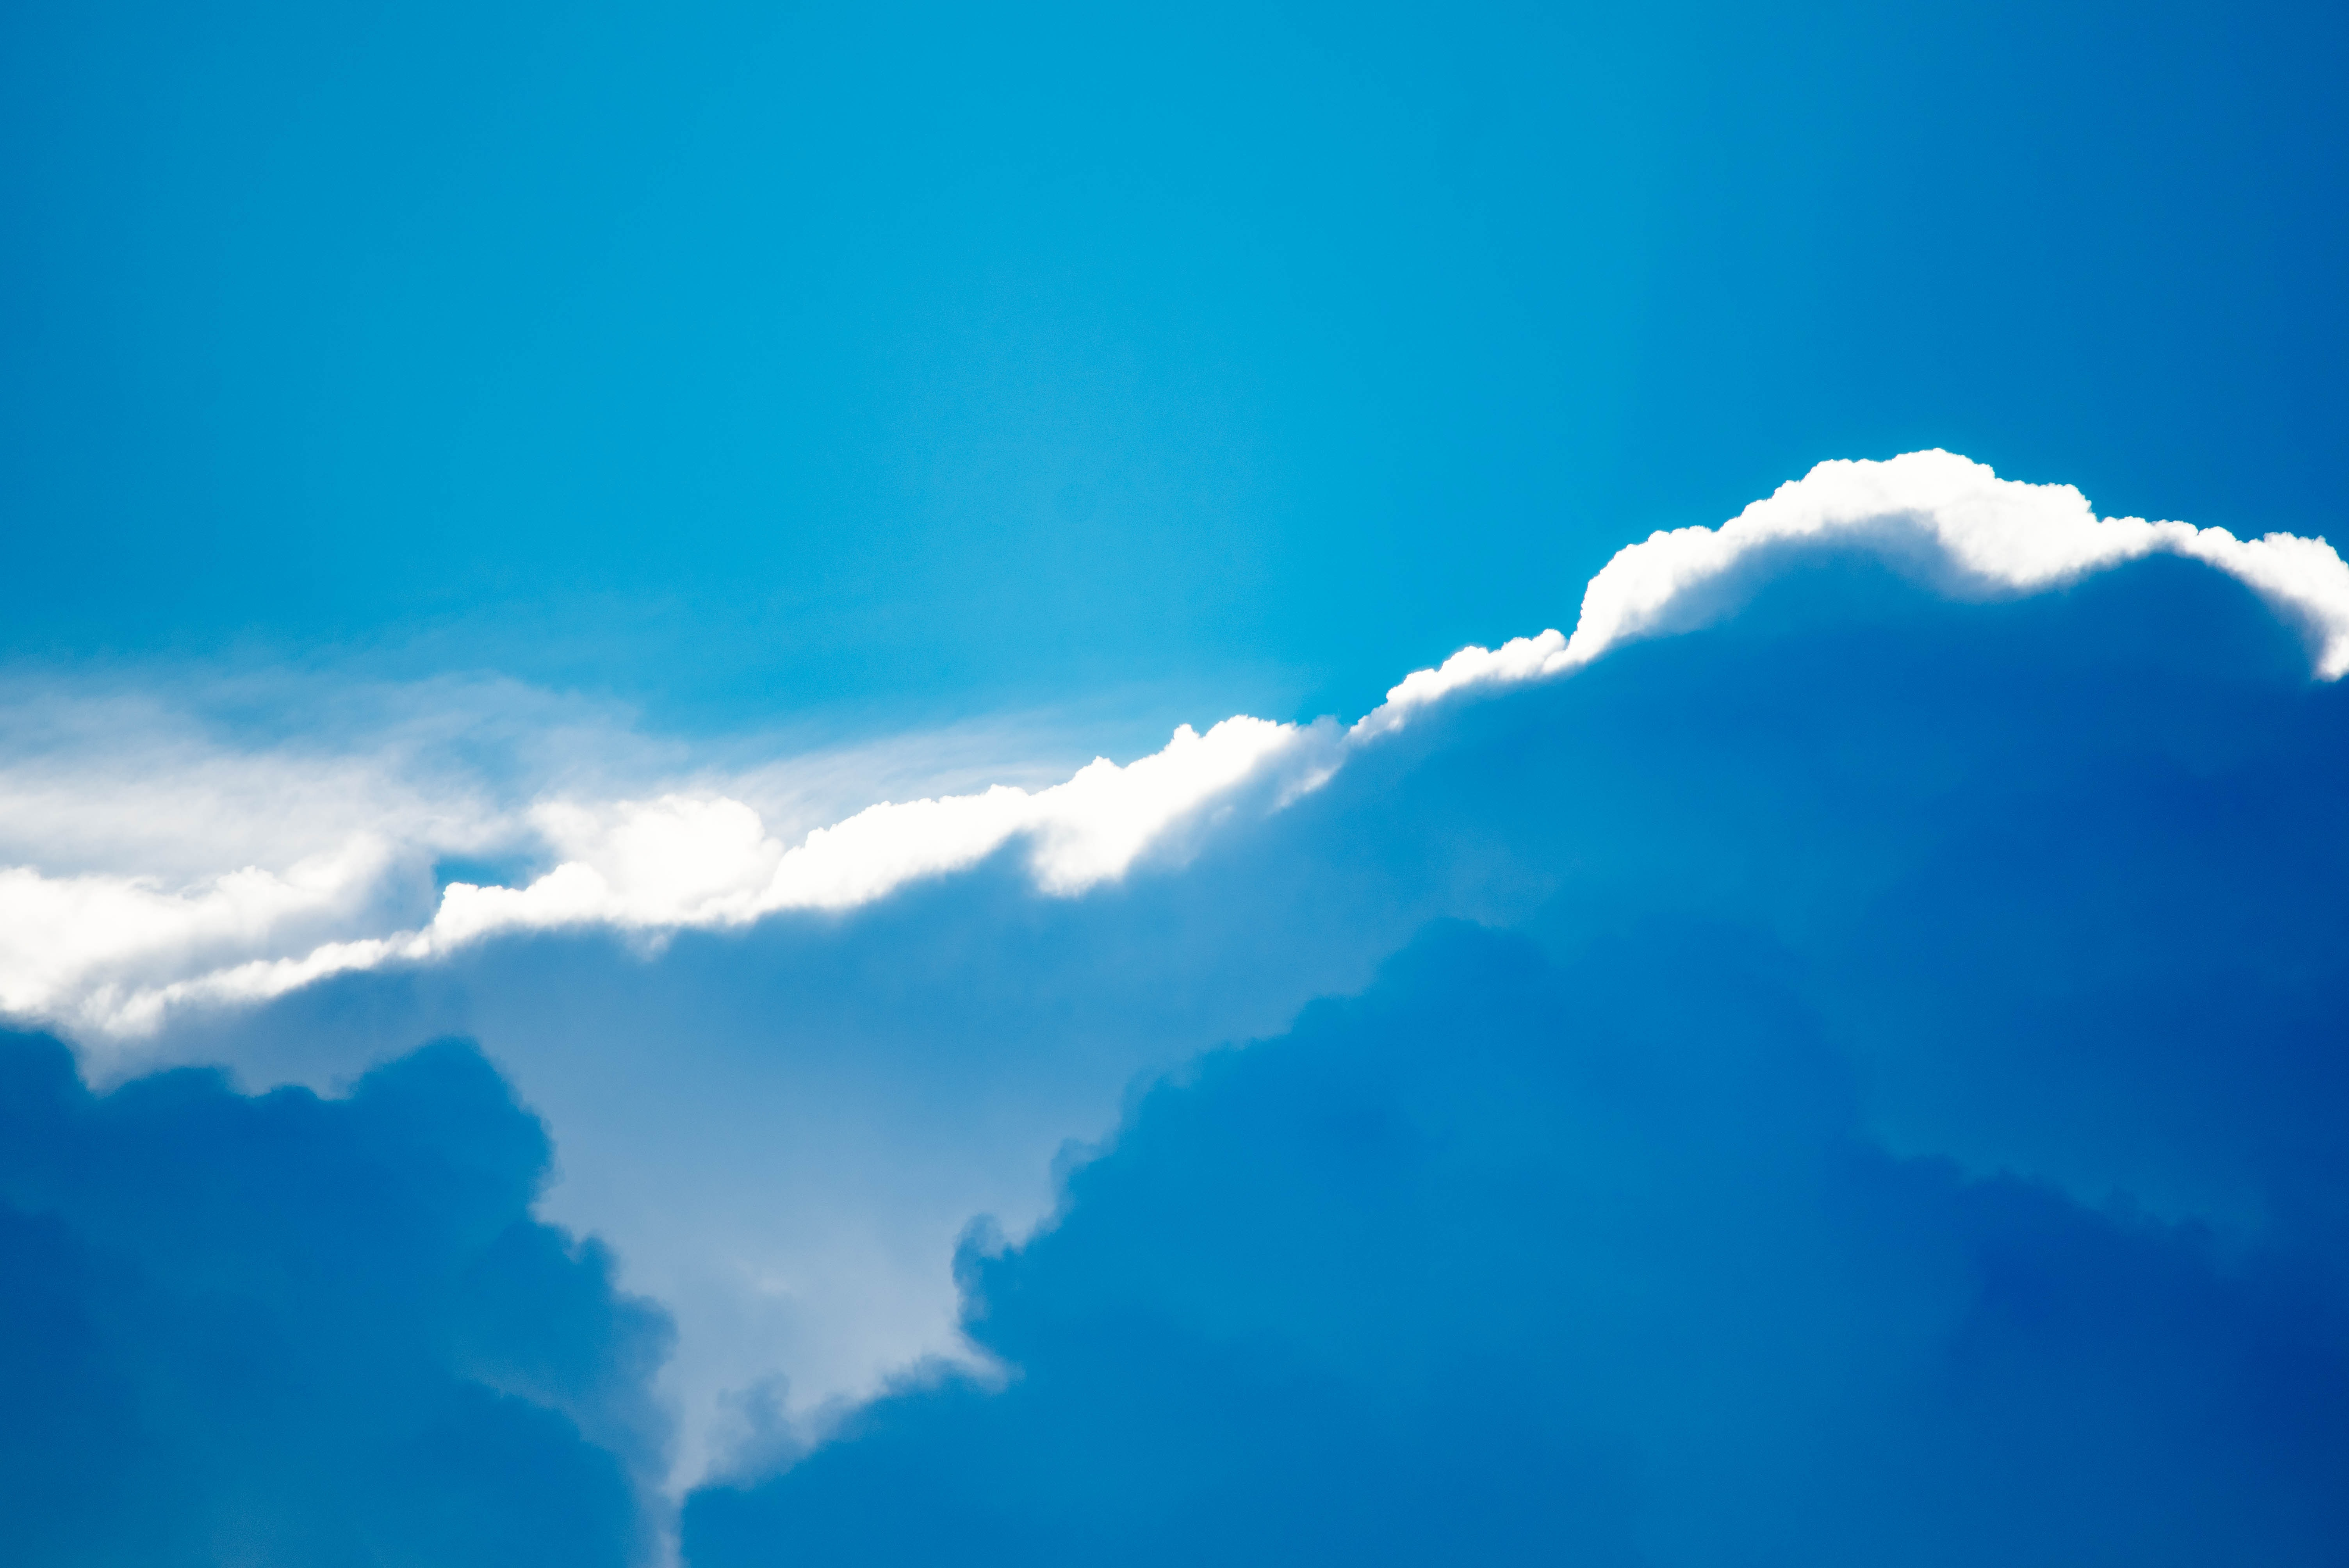 sky and clouds during daytime